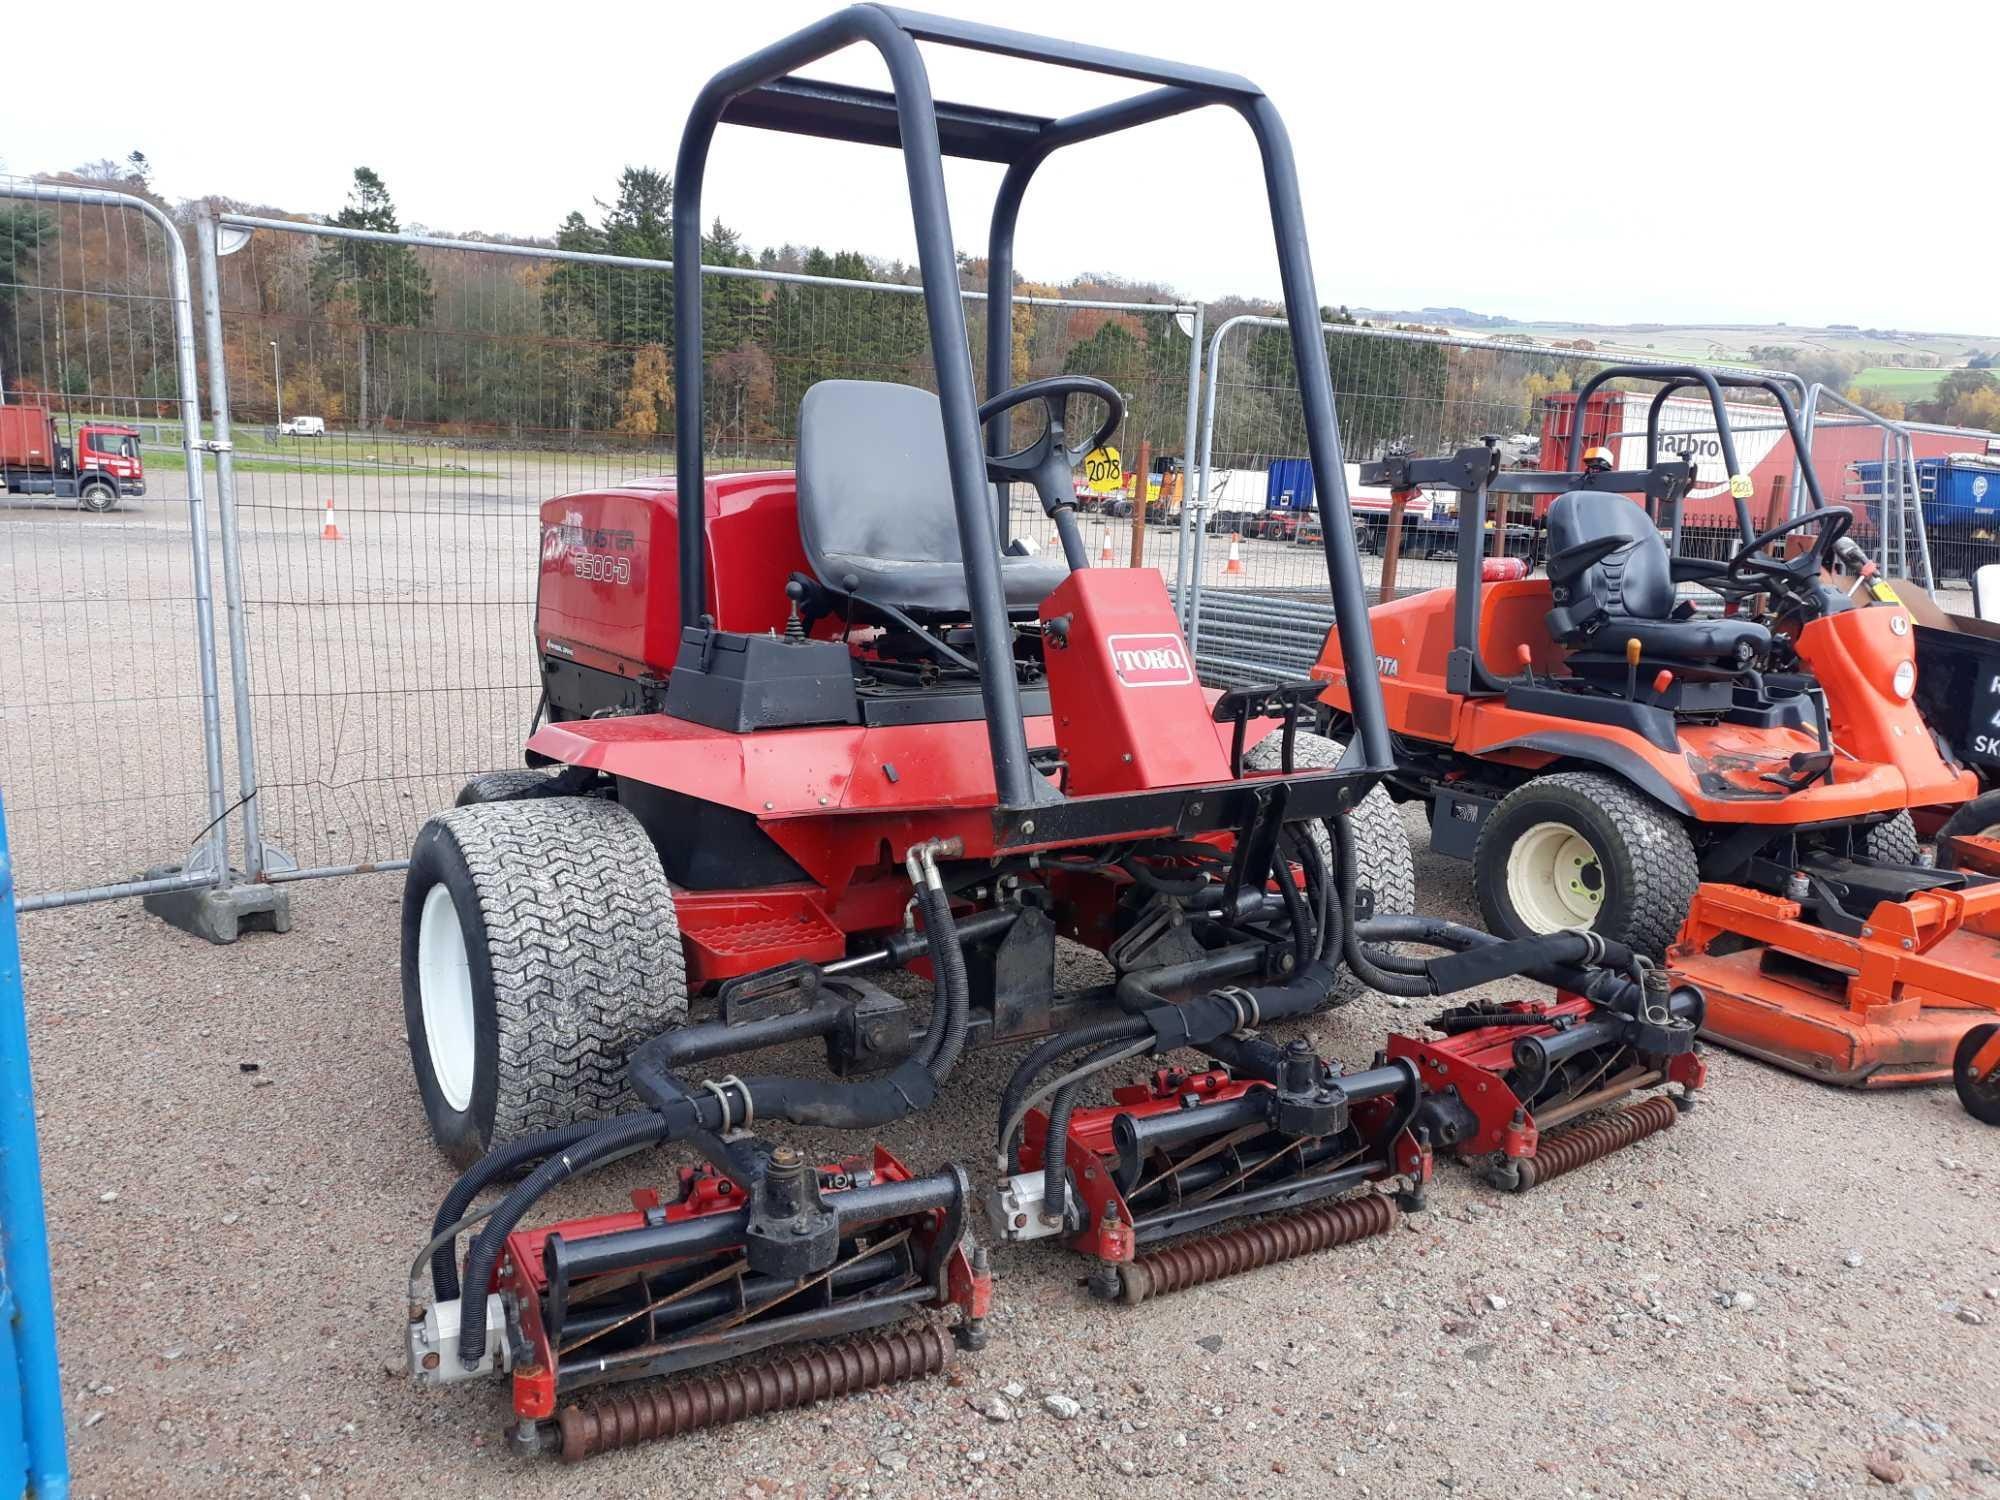 Lot 2078 - TORO 6500D TRIPLE MOWER 210000241